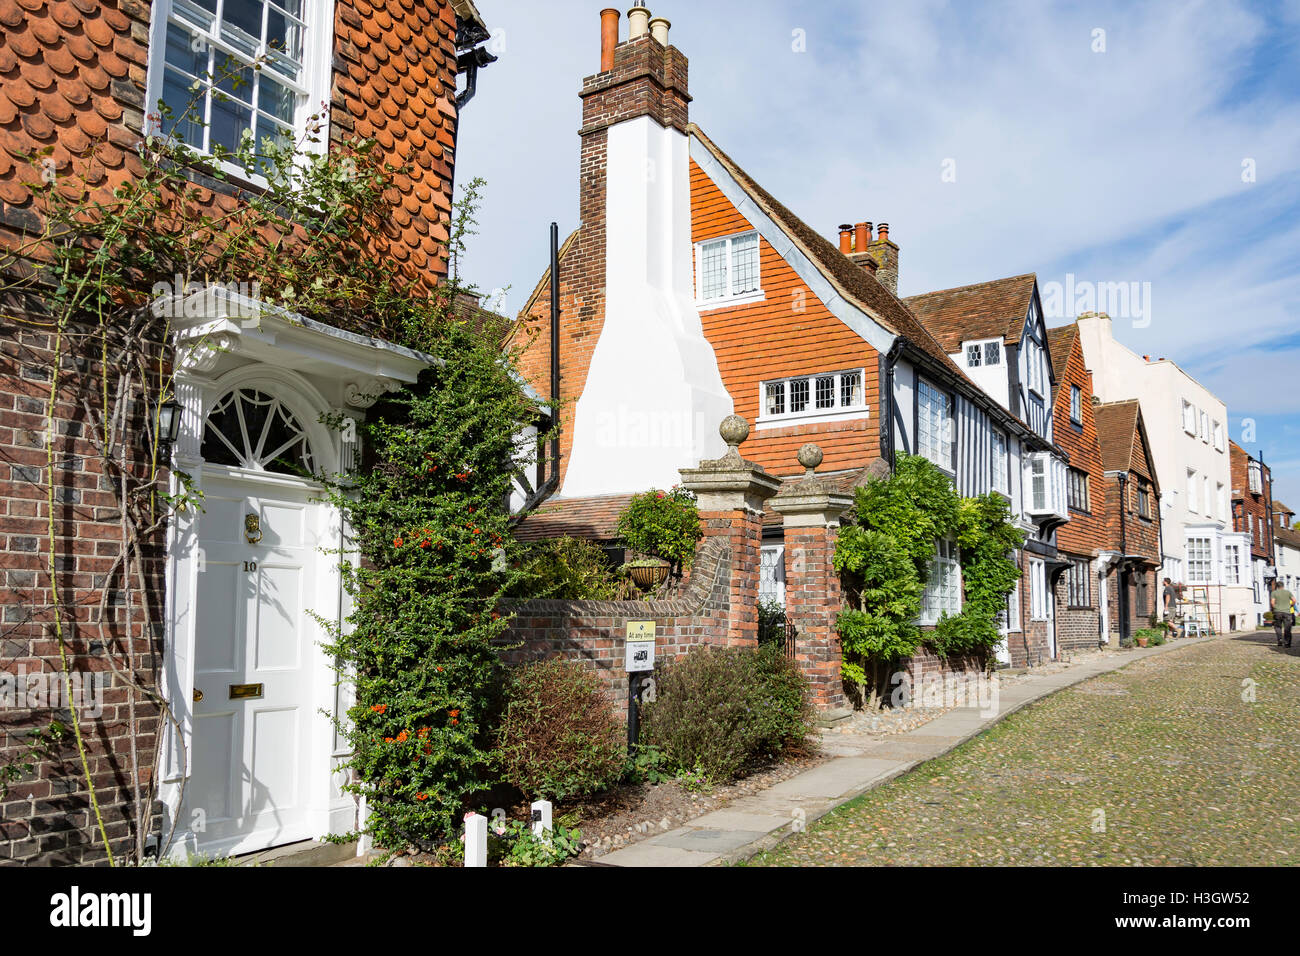 Watchbell Street, Rye, East Sussex, Angleterre, Royaume-Uni Photo Stock